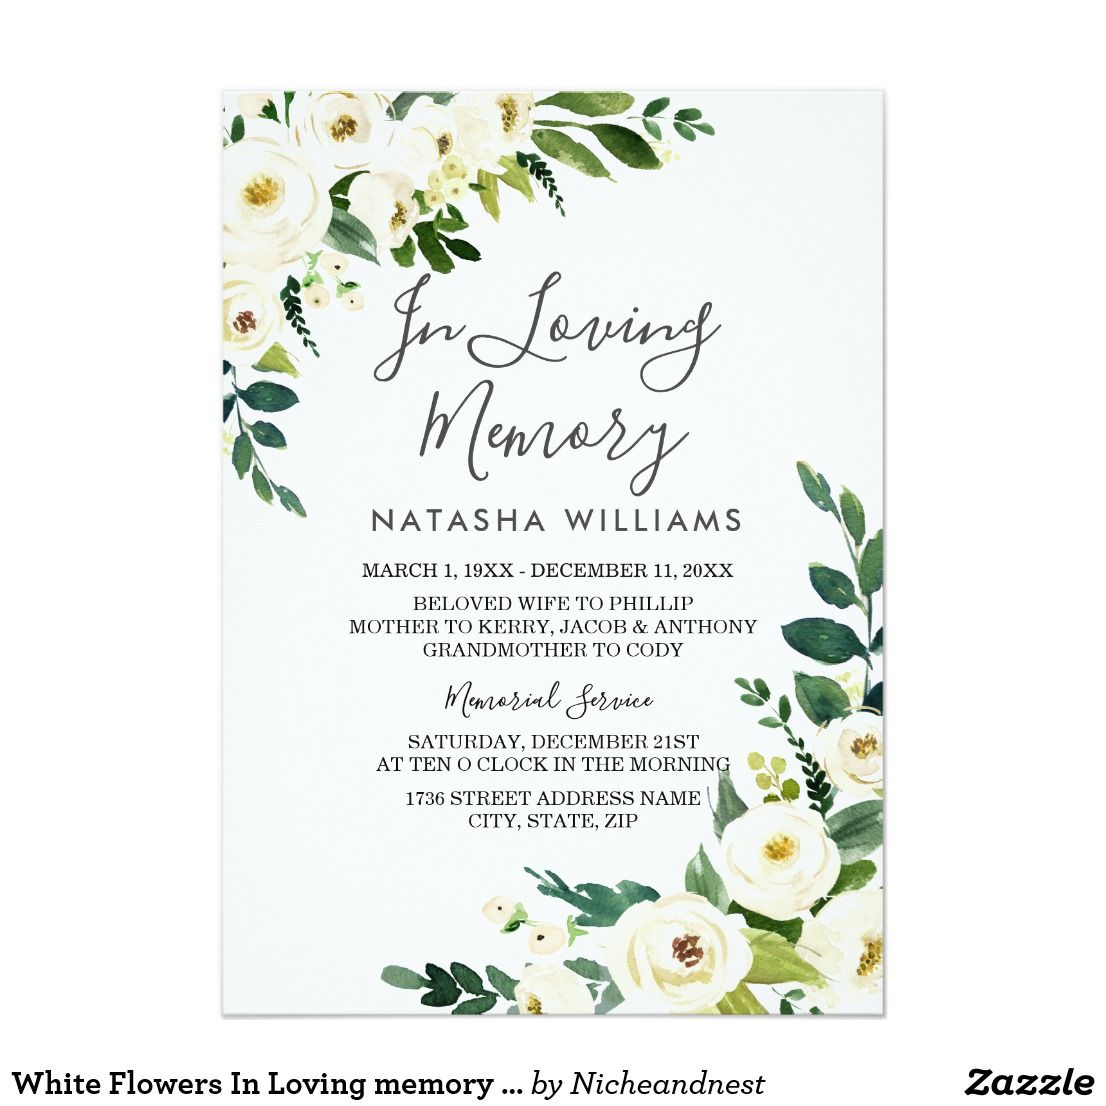 Create Your Own Invitation Zazzle Com In 2021 Memorial Service Invitation Funeral Invitation Memorial Cards For Funeral